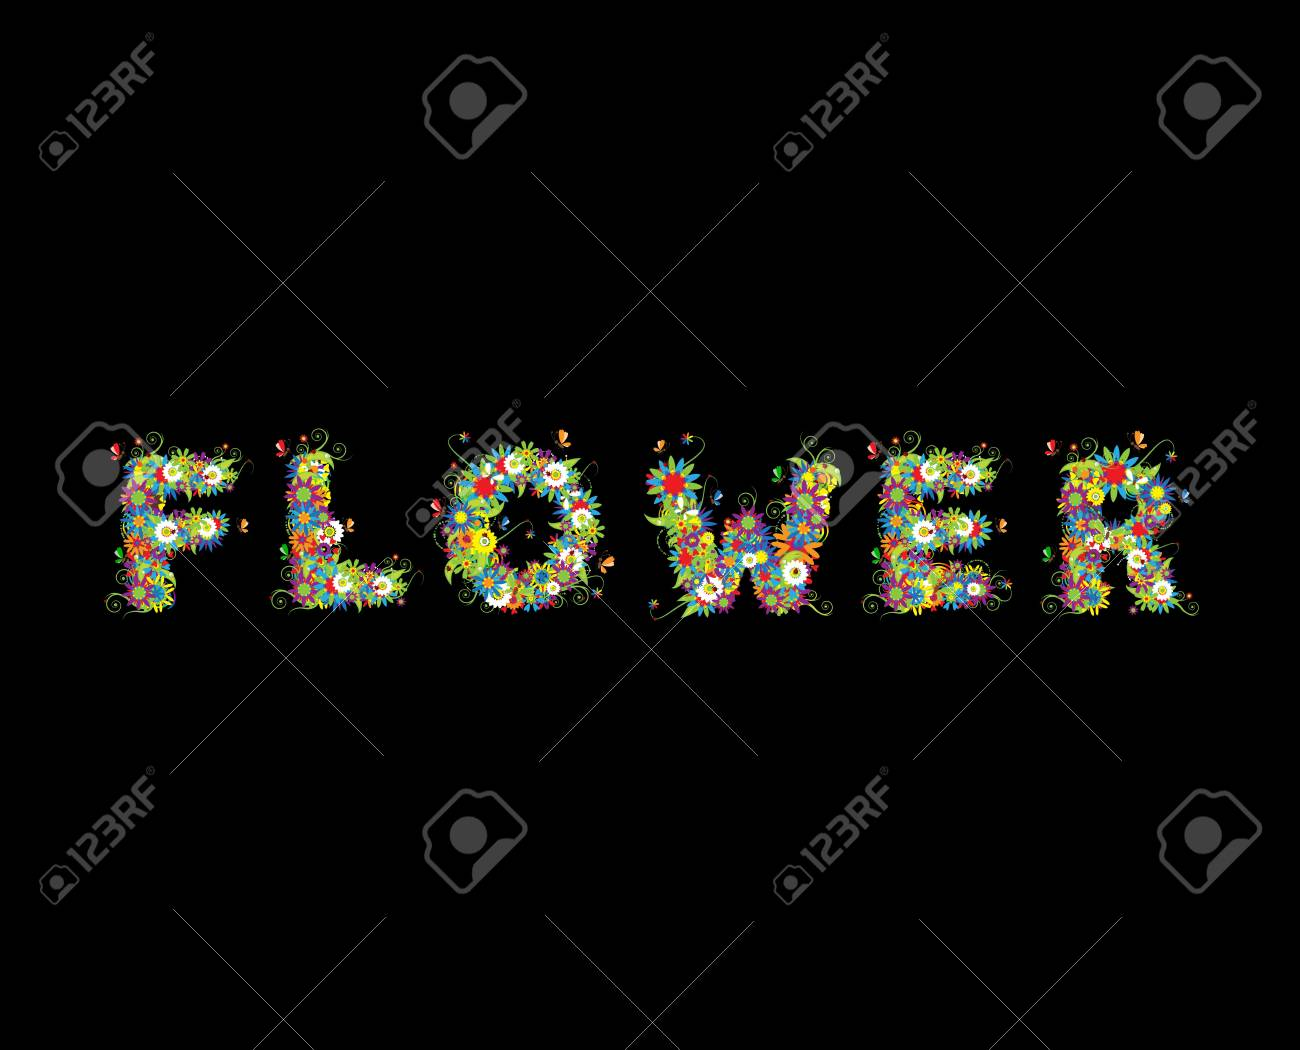 Floral design. See also letters in my gallery Stock Photo - 5348845